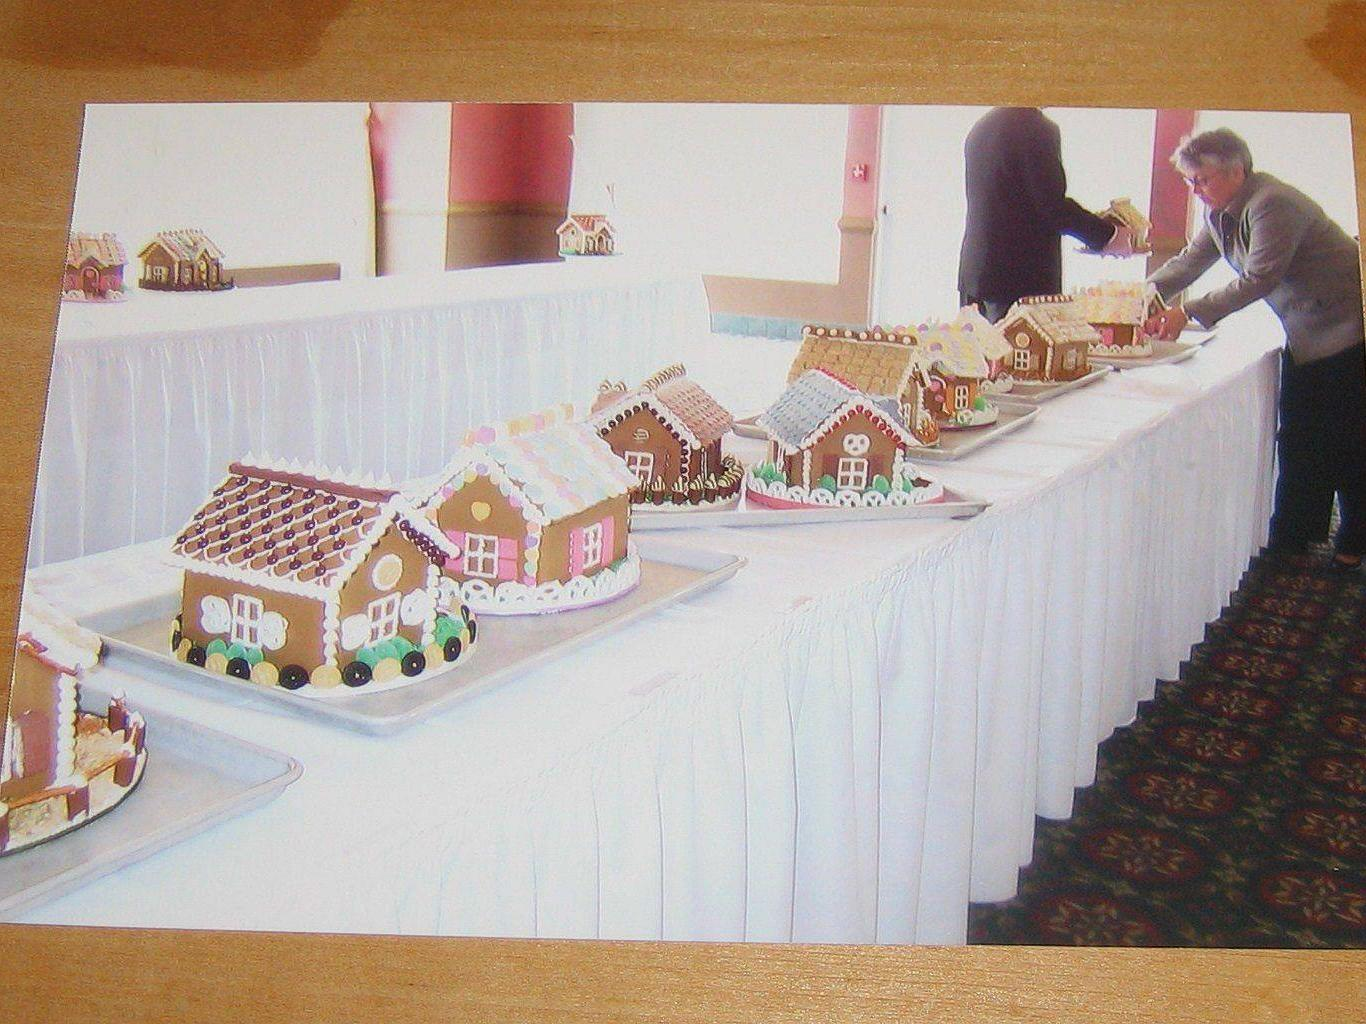 Meals on Wheels Gingerbread